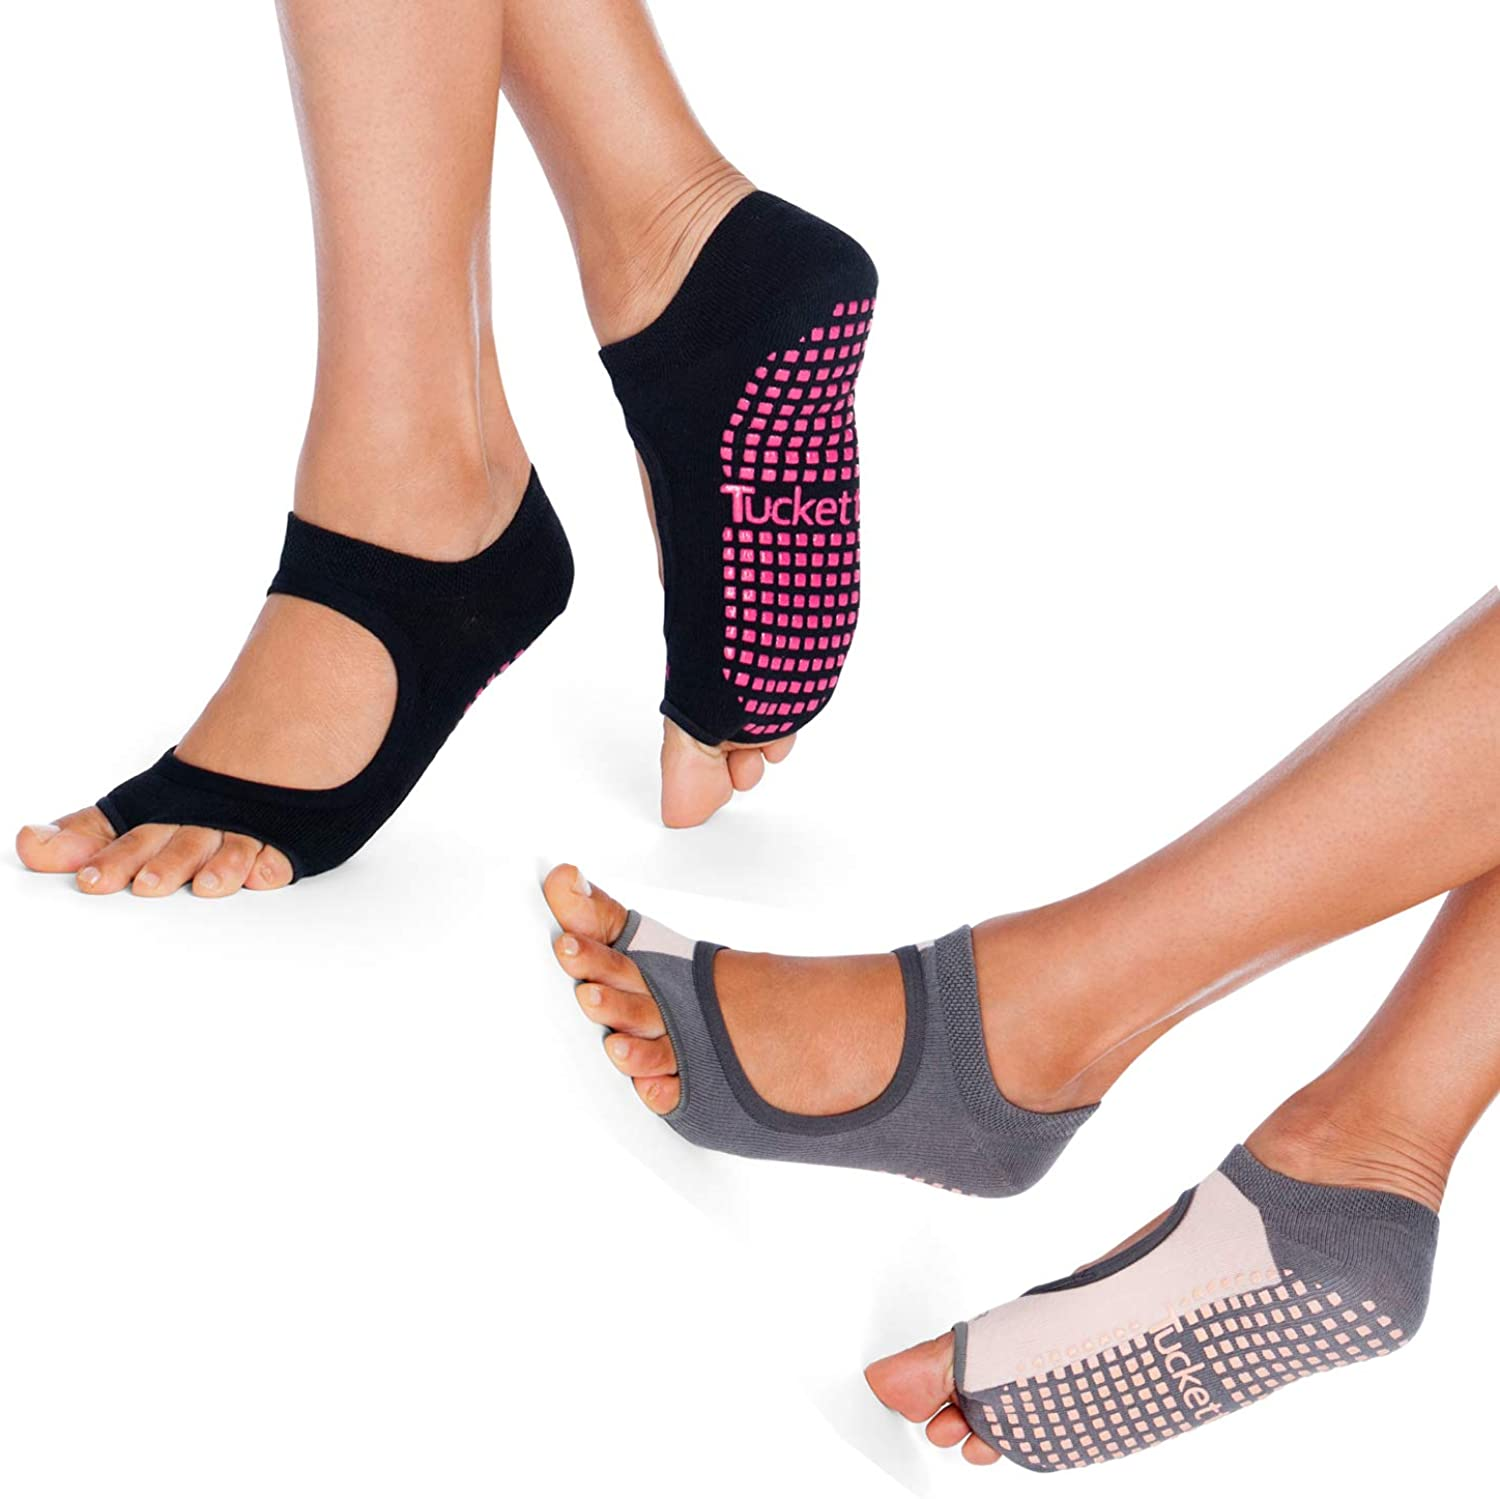 Pilates Toeless Non Skid Sticky Grip Sock 2 Pack Yoga Pilates Socks for Women Non Slip Barre Ballet